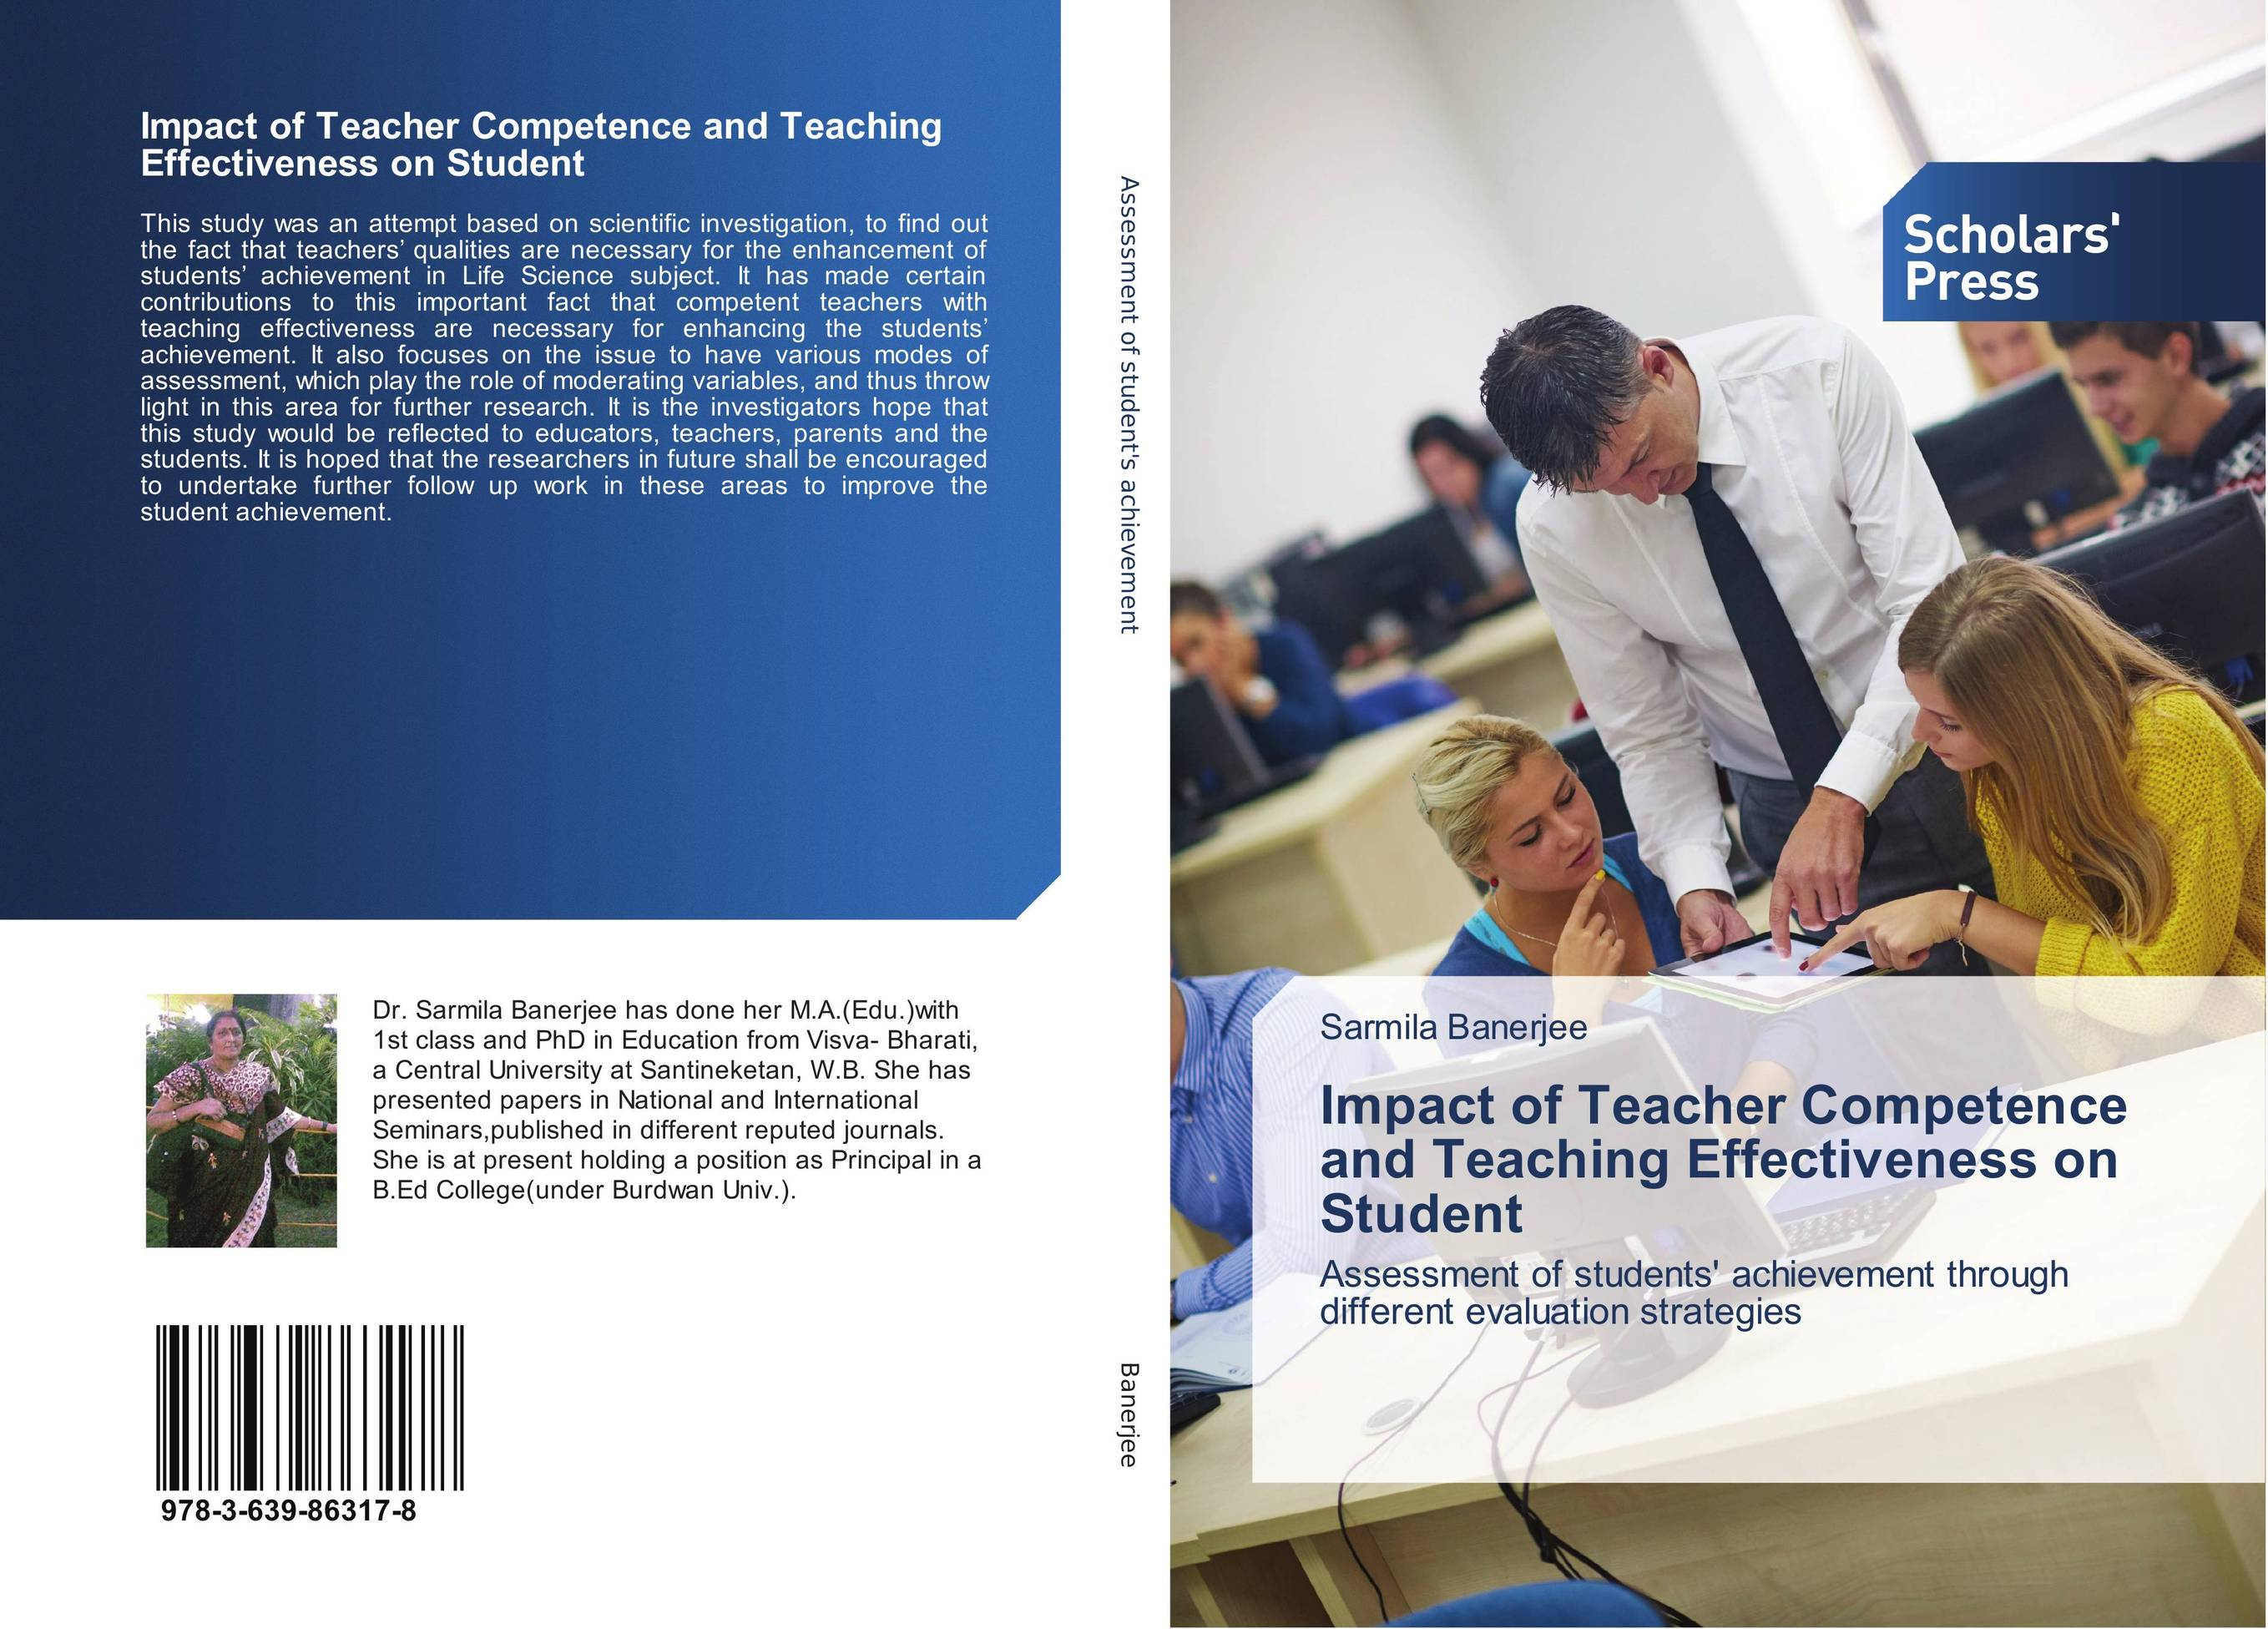 Impact of Teacher Competence and Teaching Effectiveness on Student ict application impact on 10 11 year learners' mathematical competence